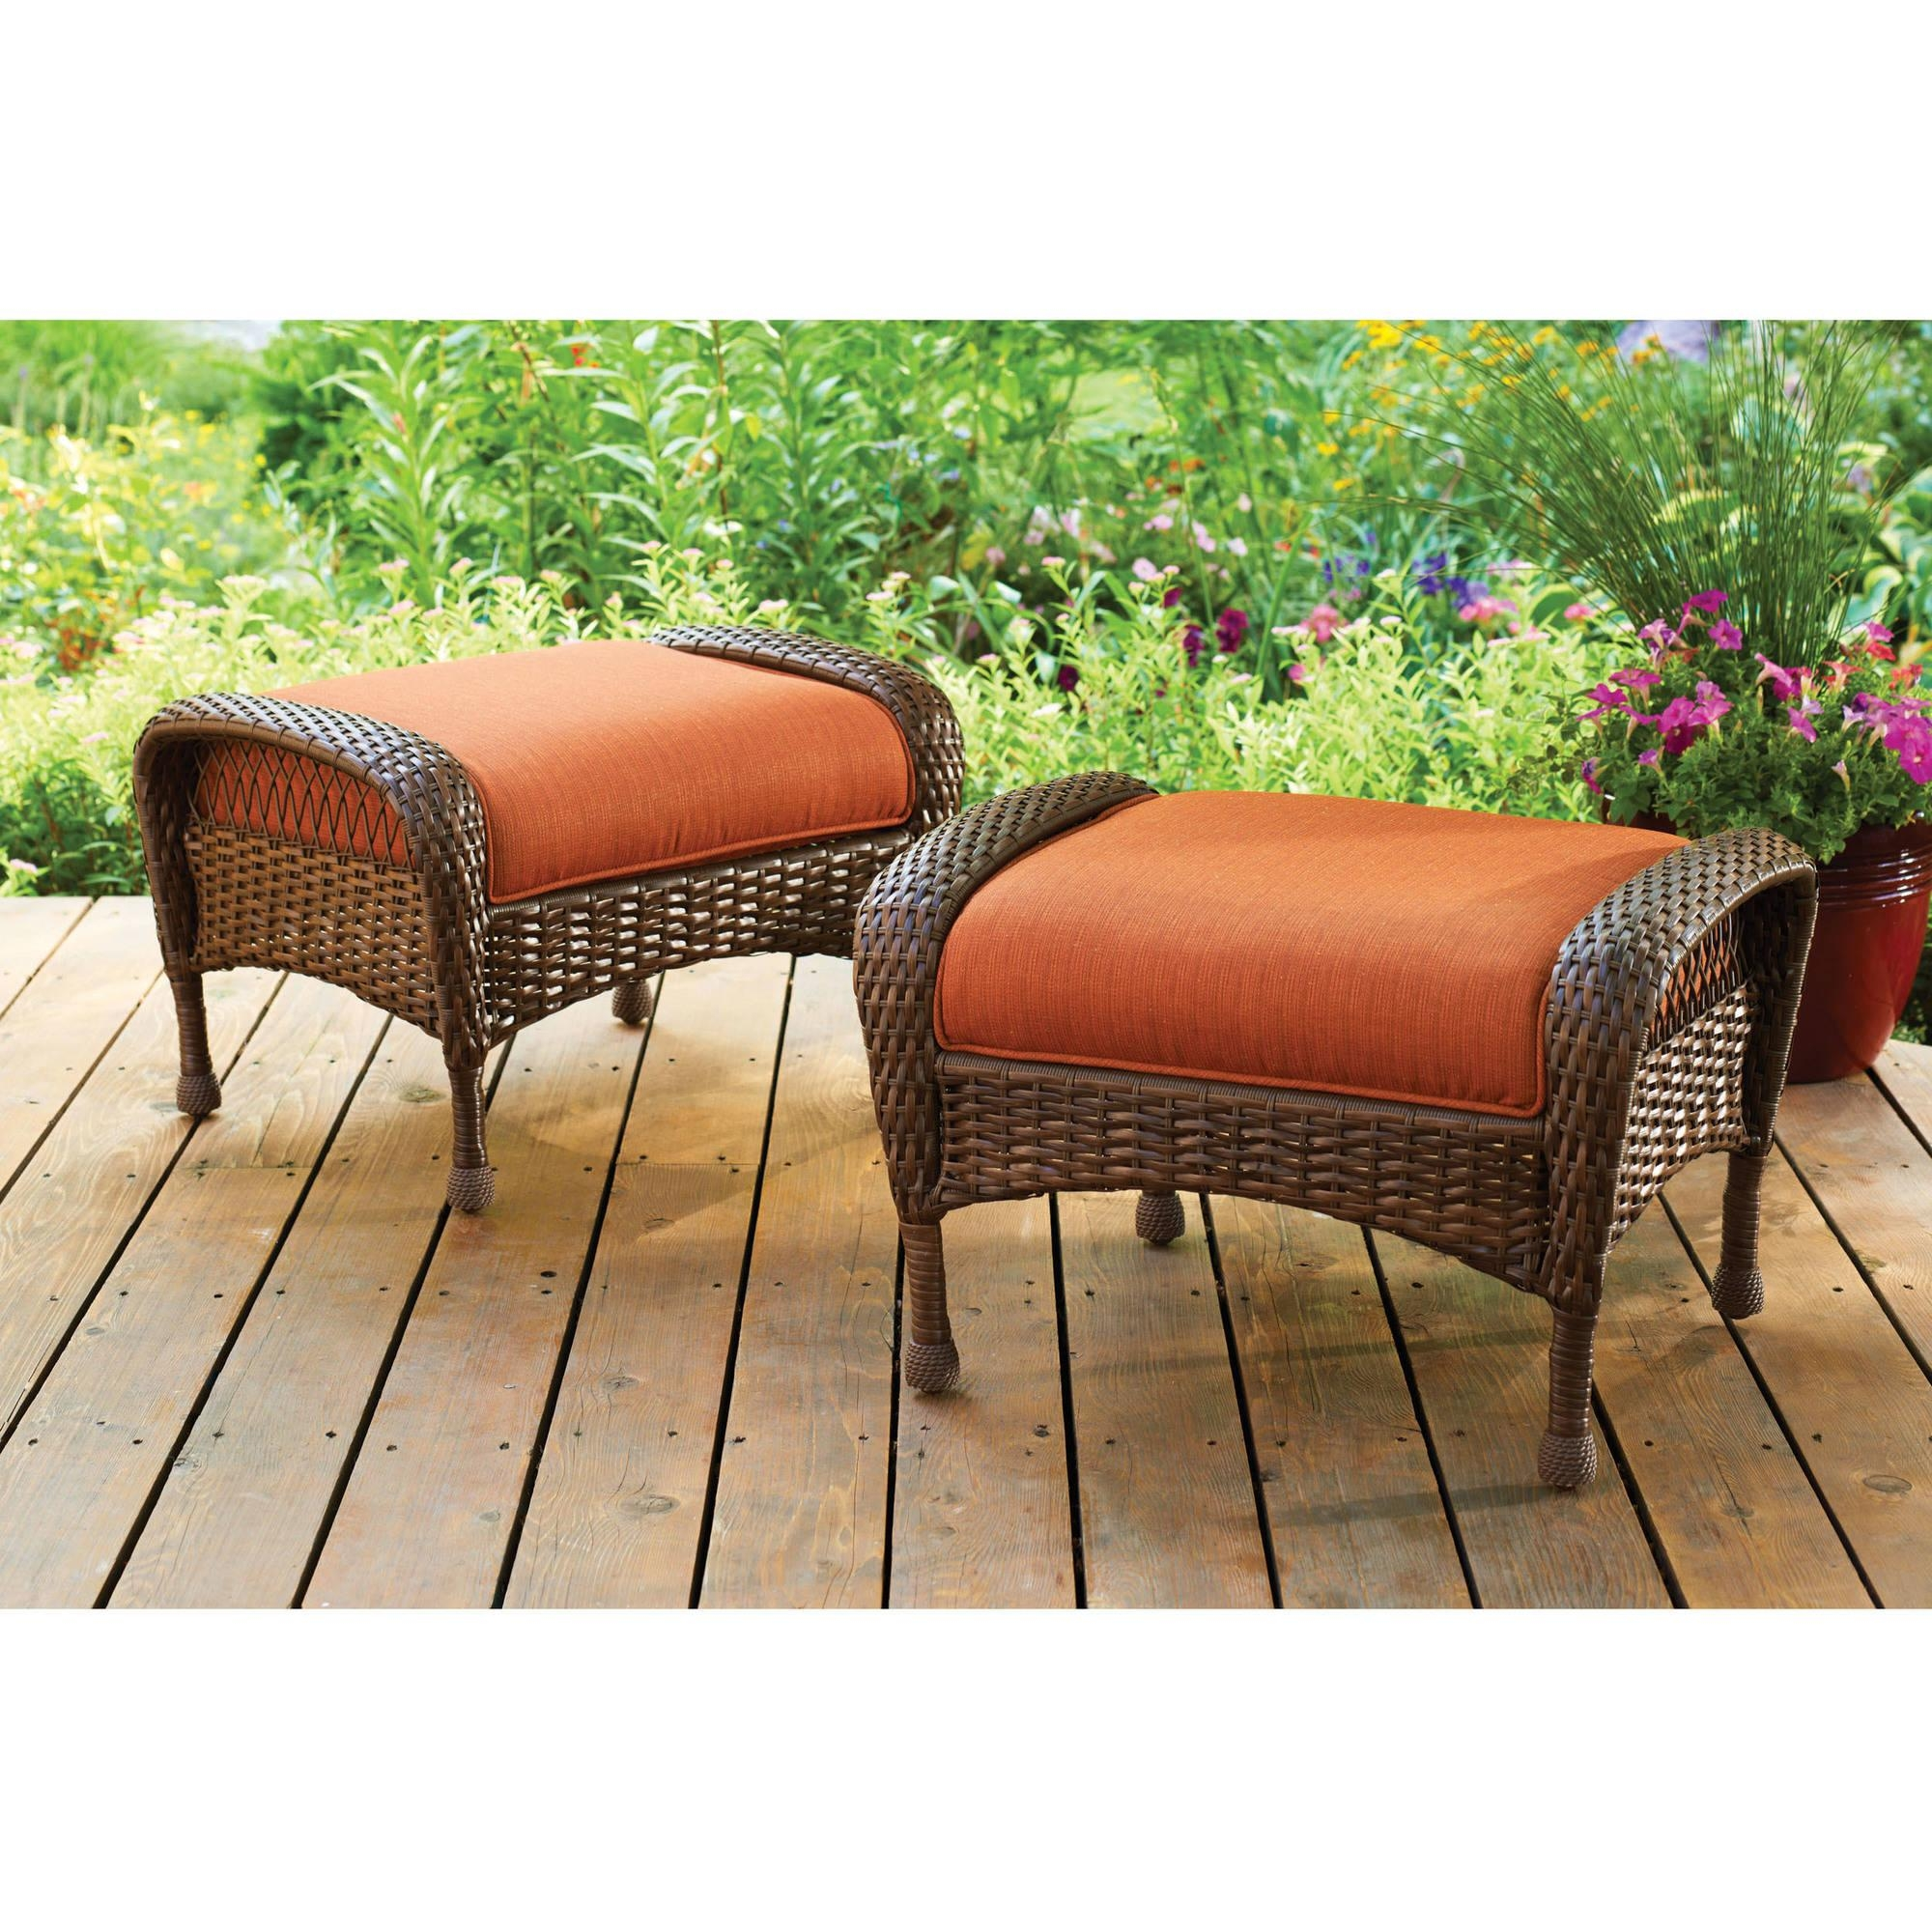 Patio Furniture – Walmart In Patio Sofa Tables (Image 16 of 20)